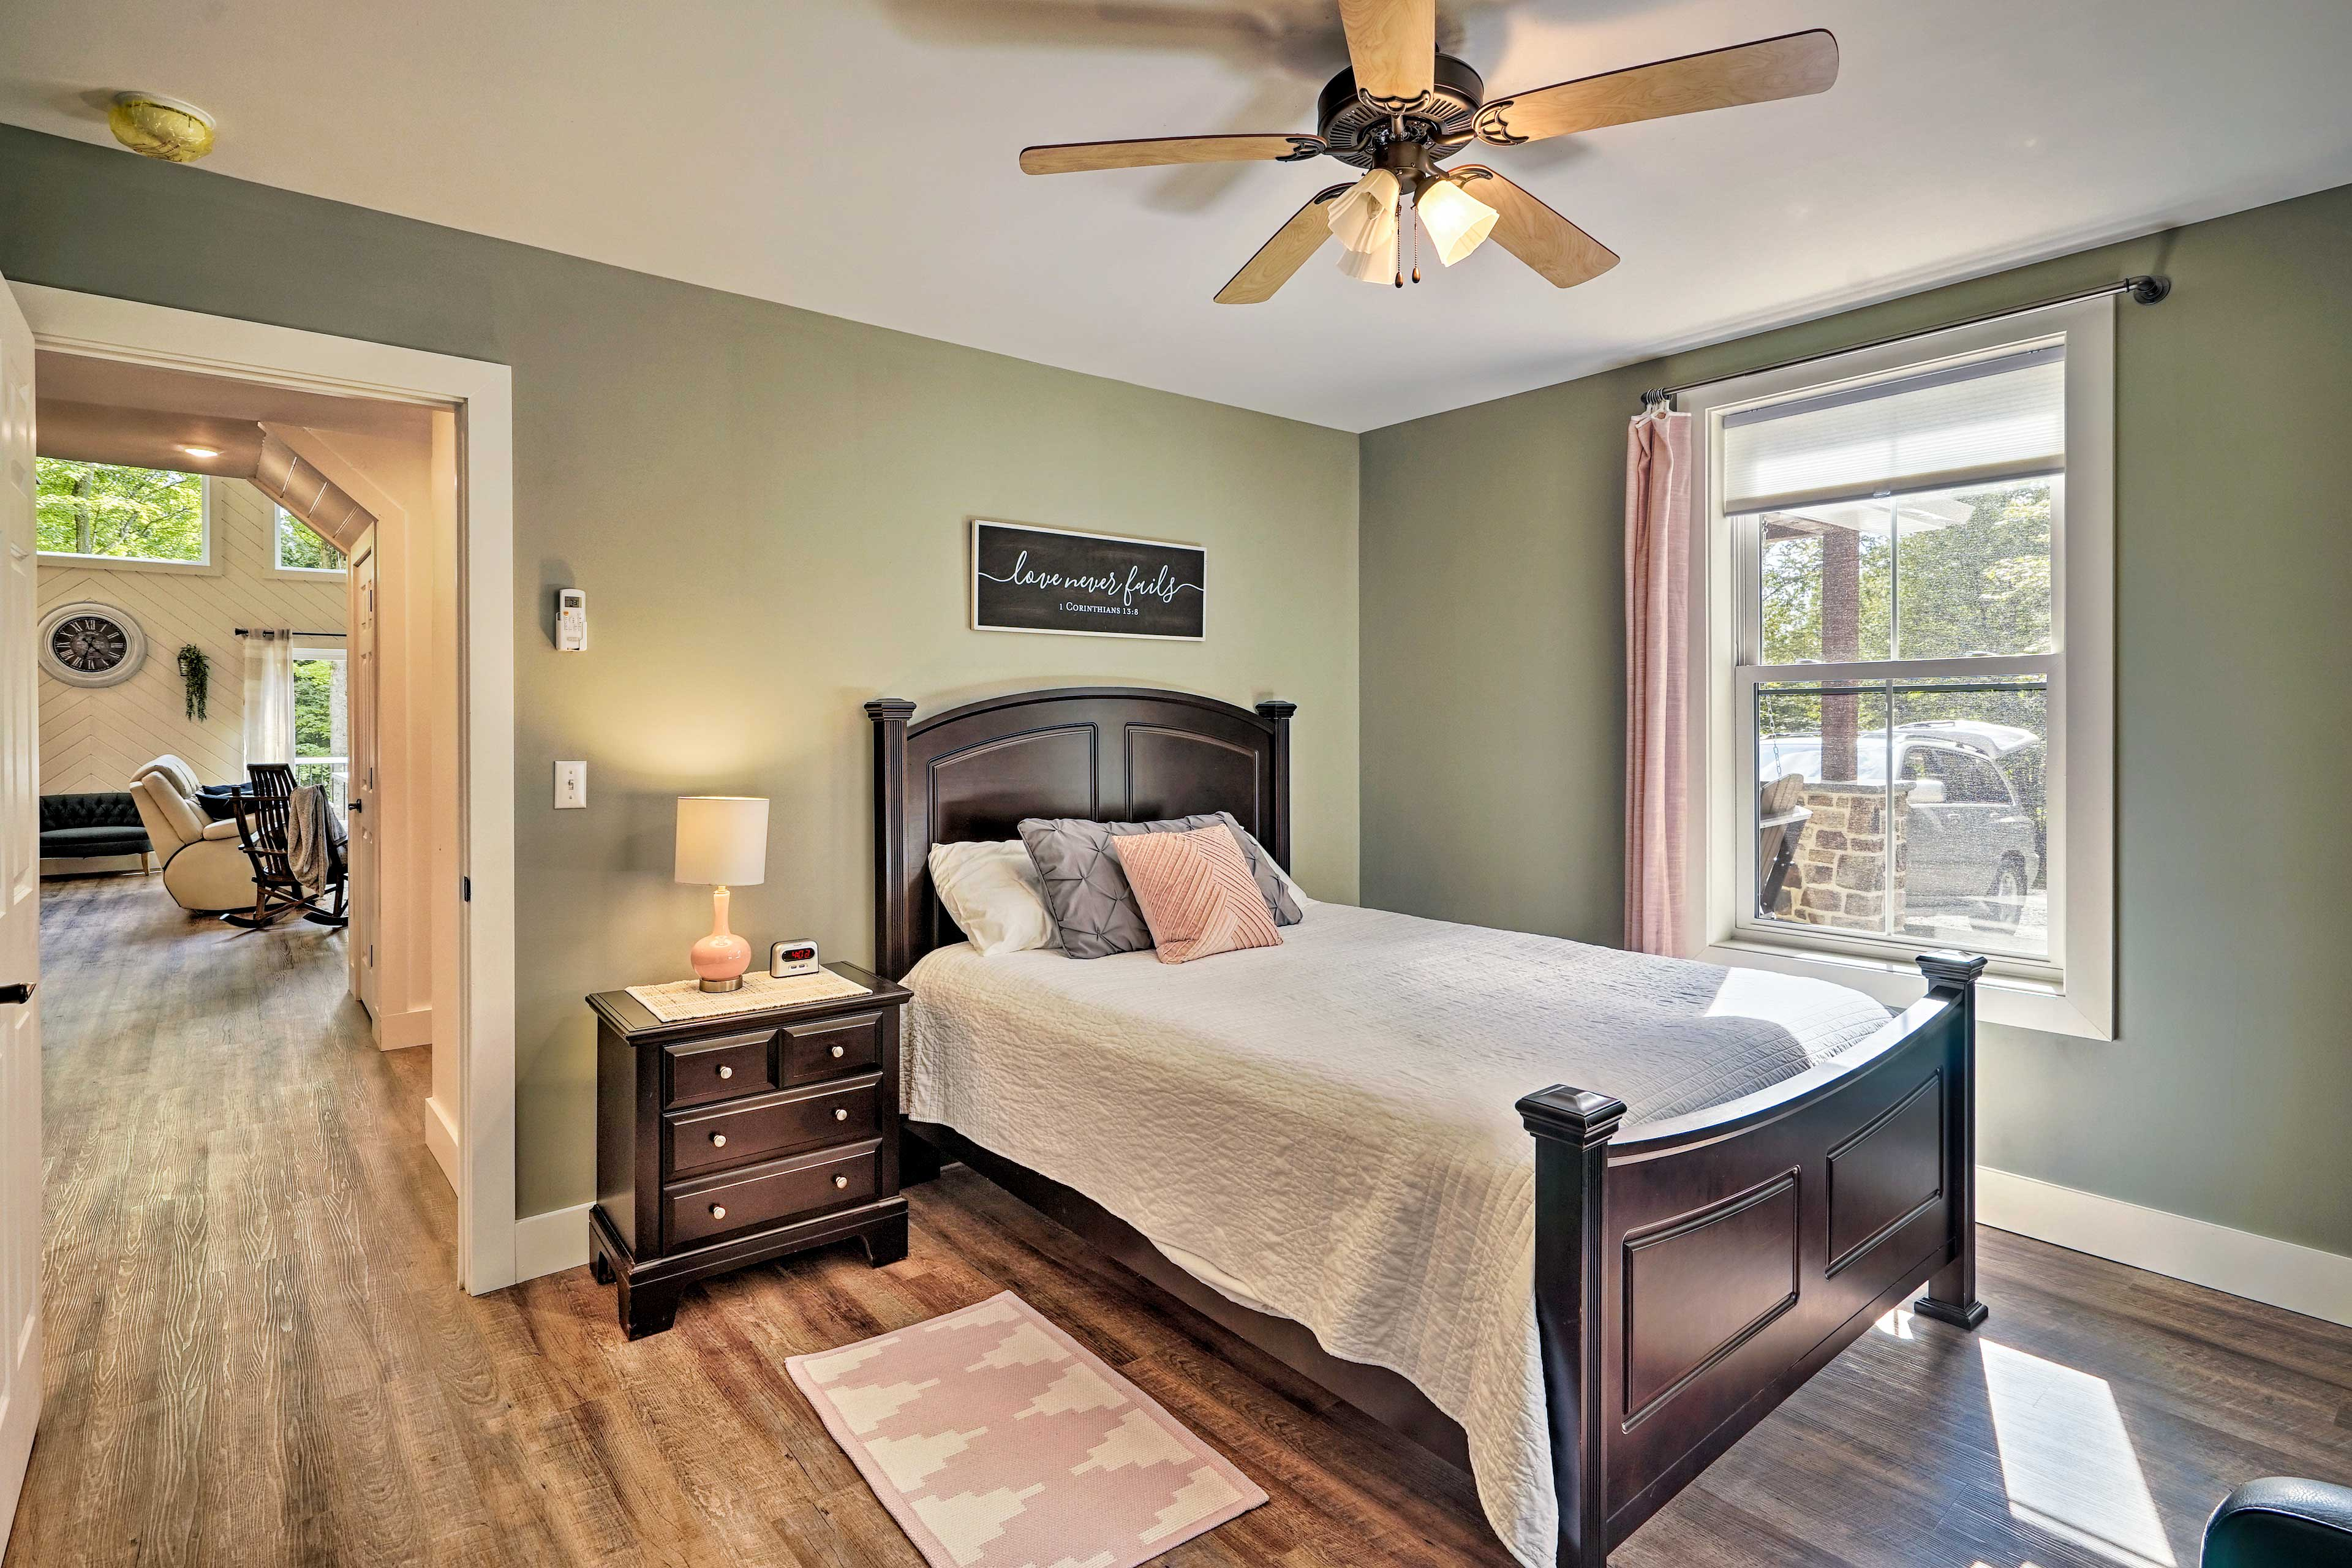 Retreat to this cozy queen bed or sleeper sofa after a day at the wineries!